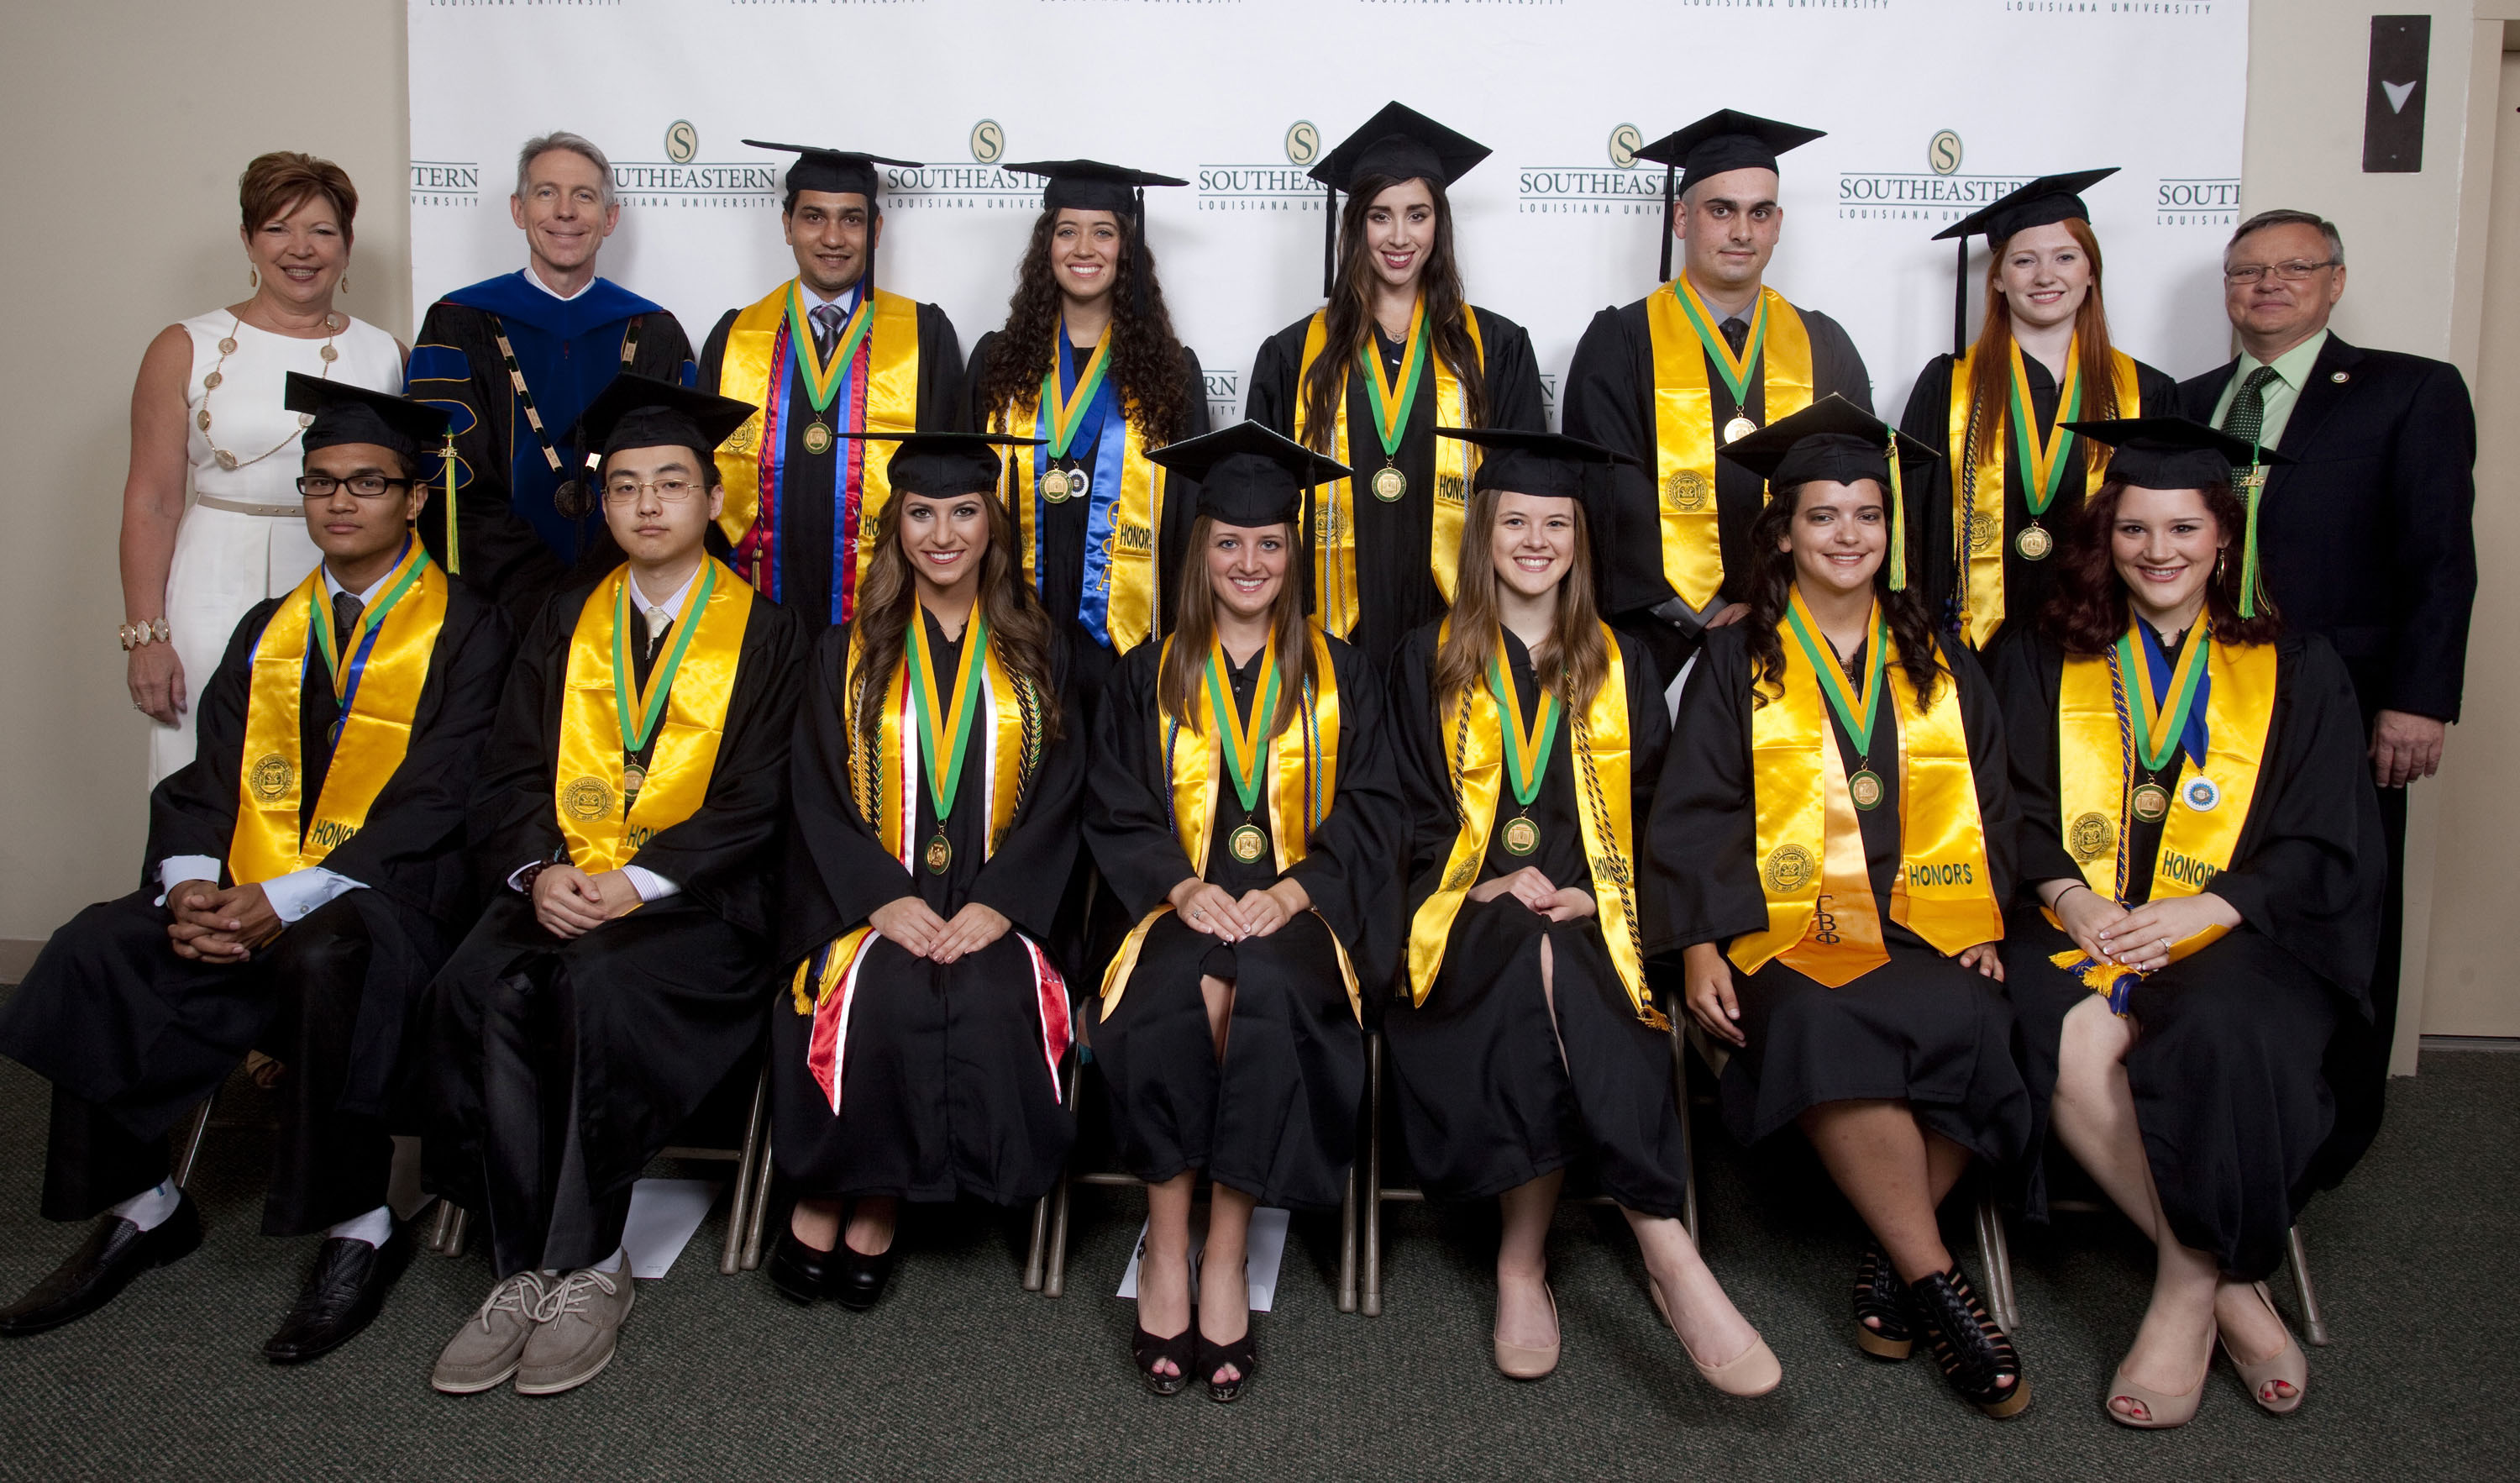 Southeastern confers degrees on approximately 1100